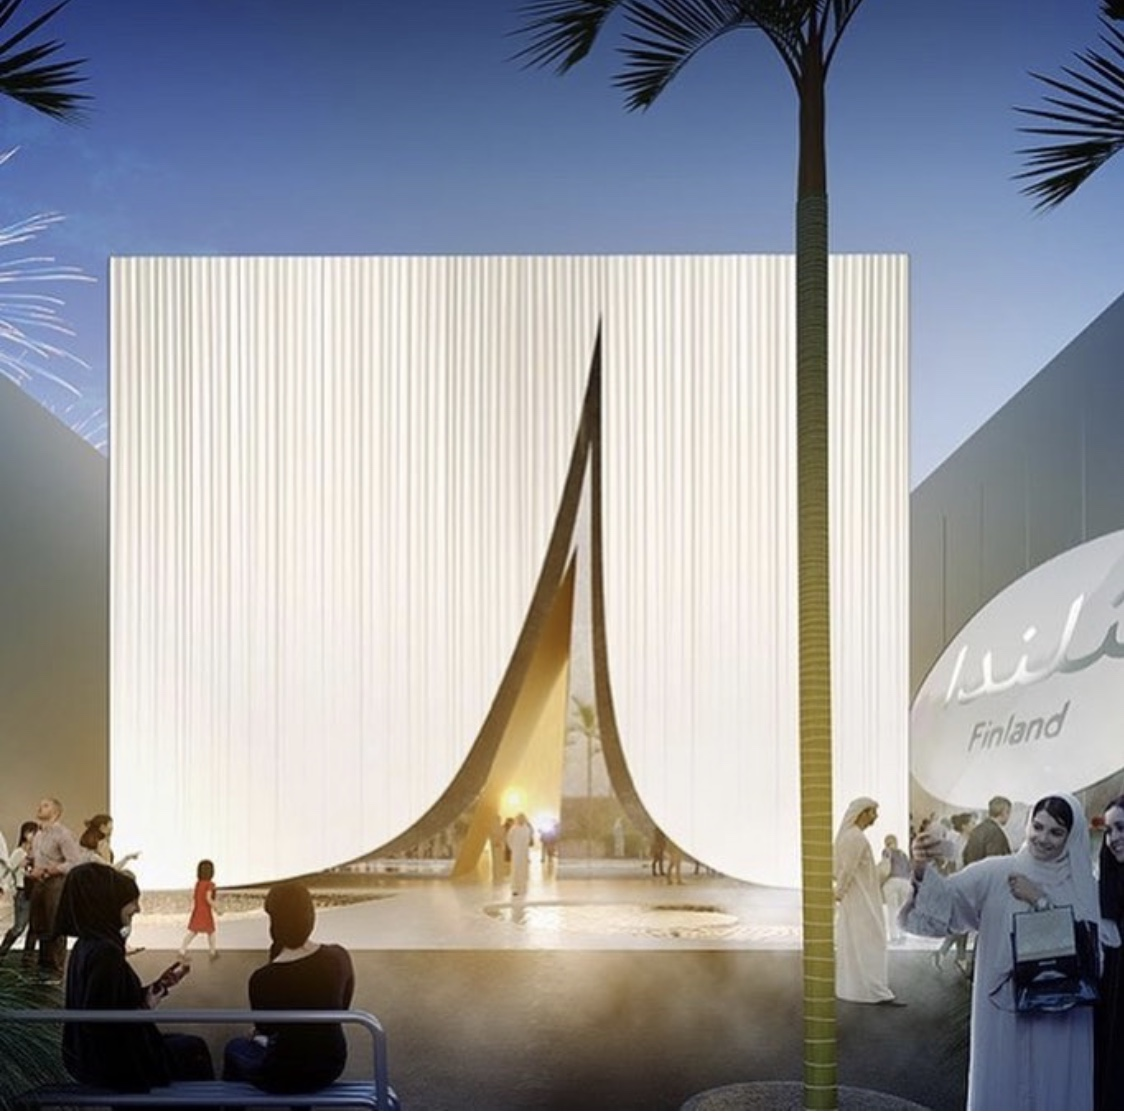 """Innovative business solutions will be promoted in Finland's """"Snow Cape"""" Pavilion during Dubai Expo2020."""